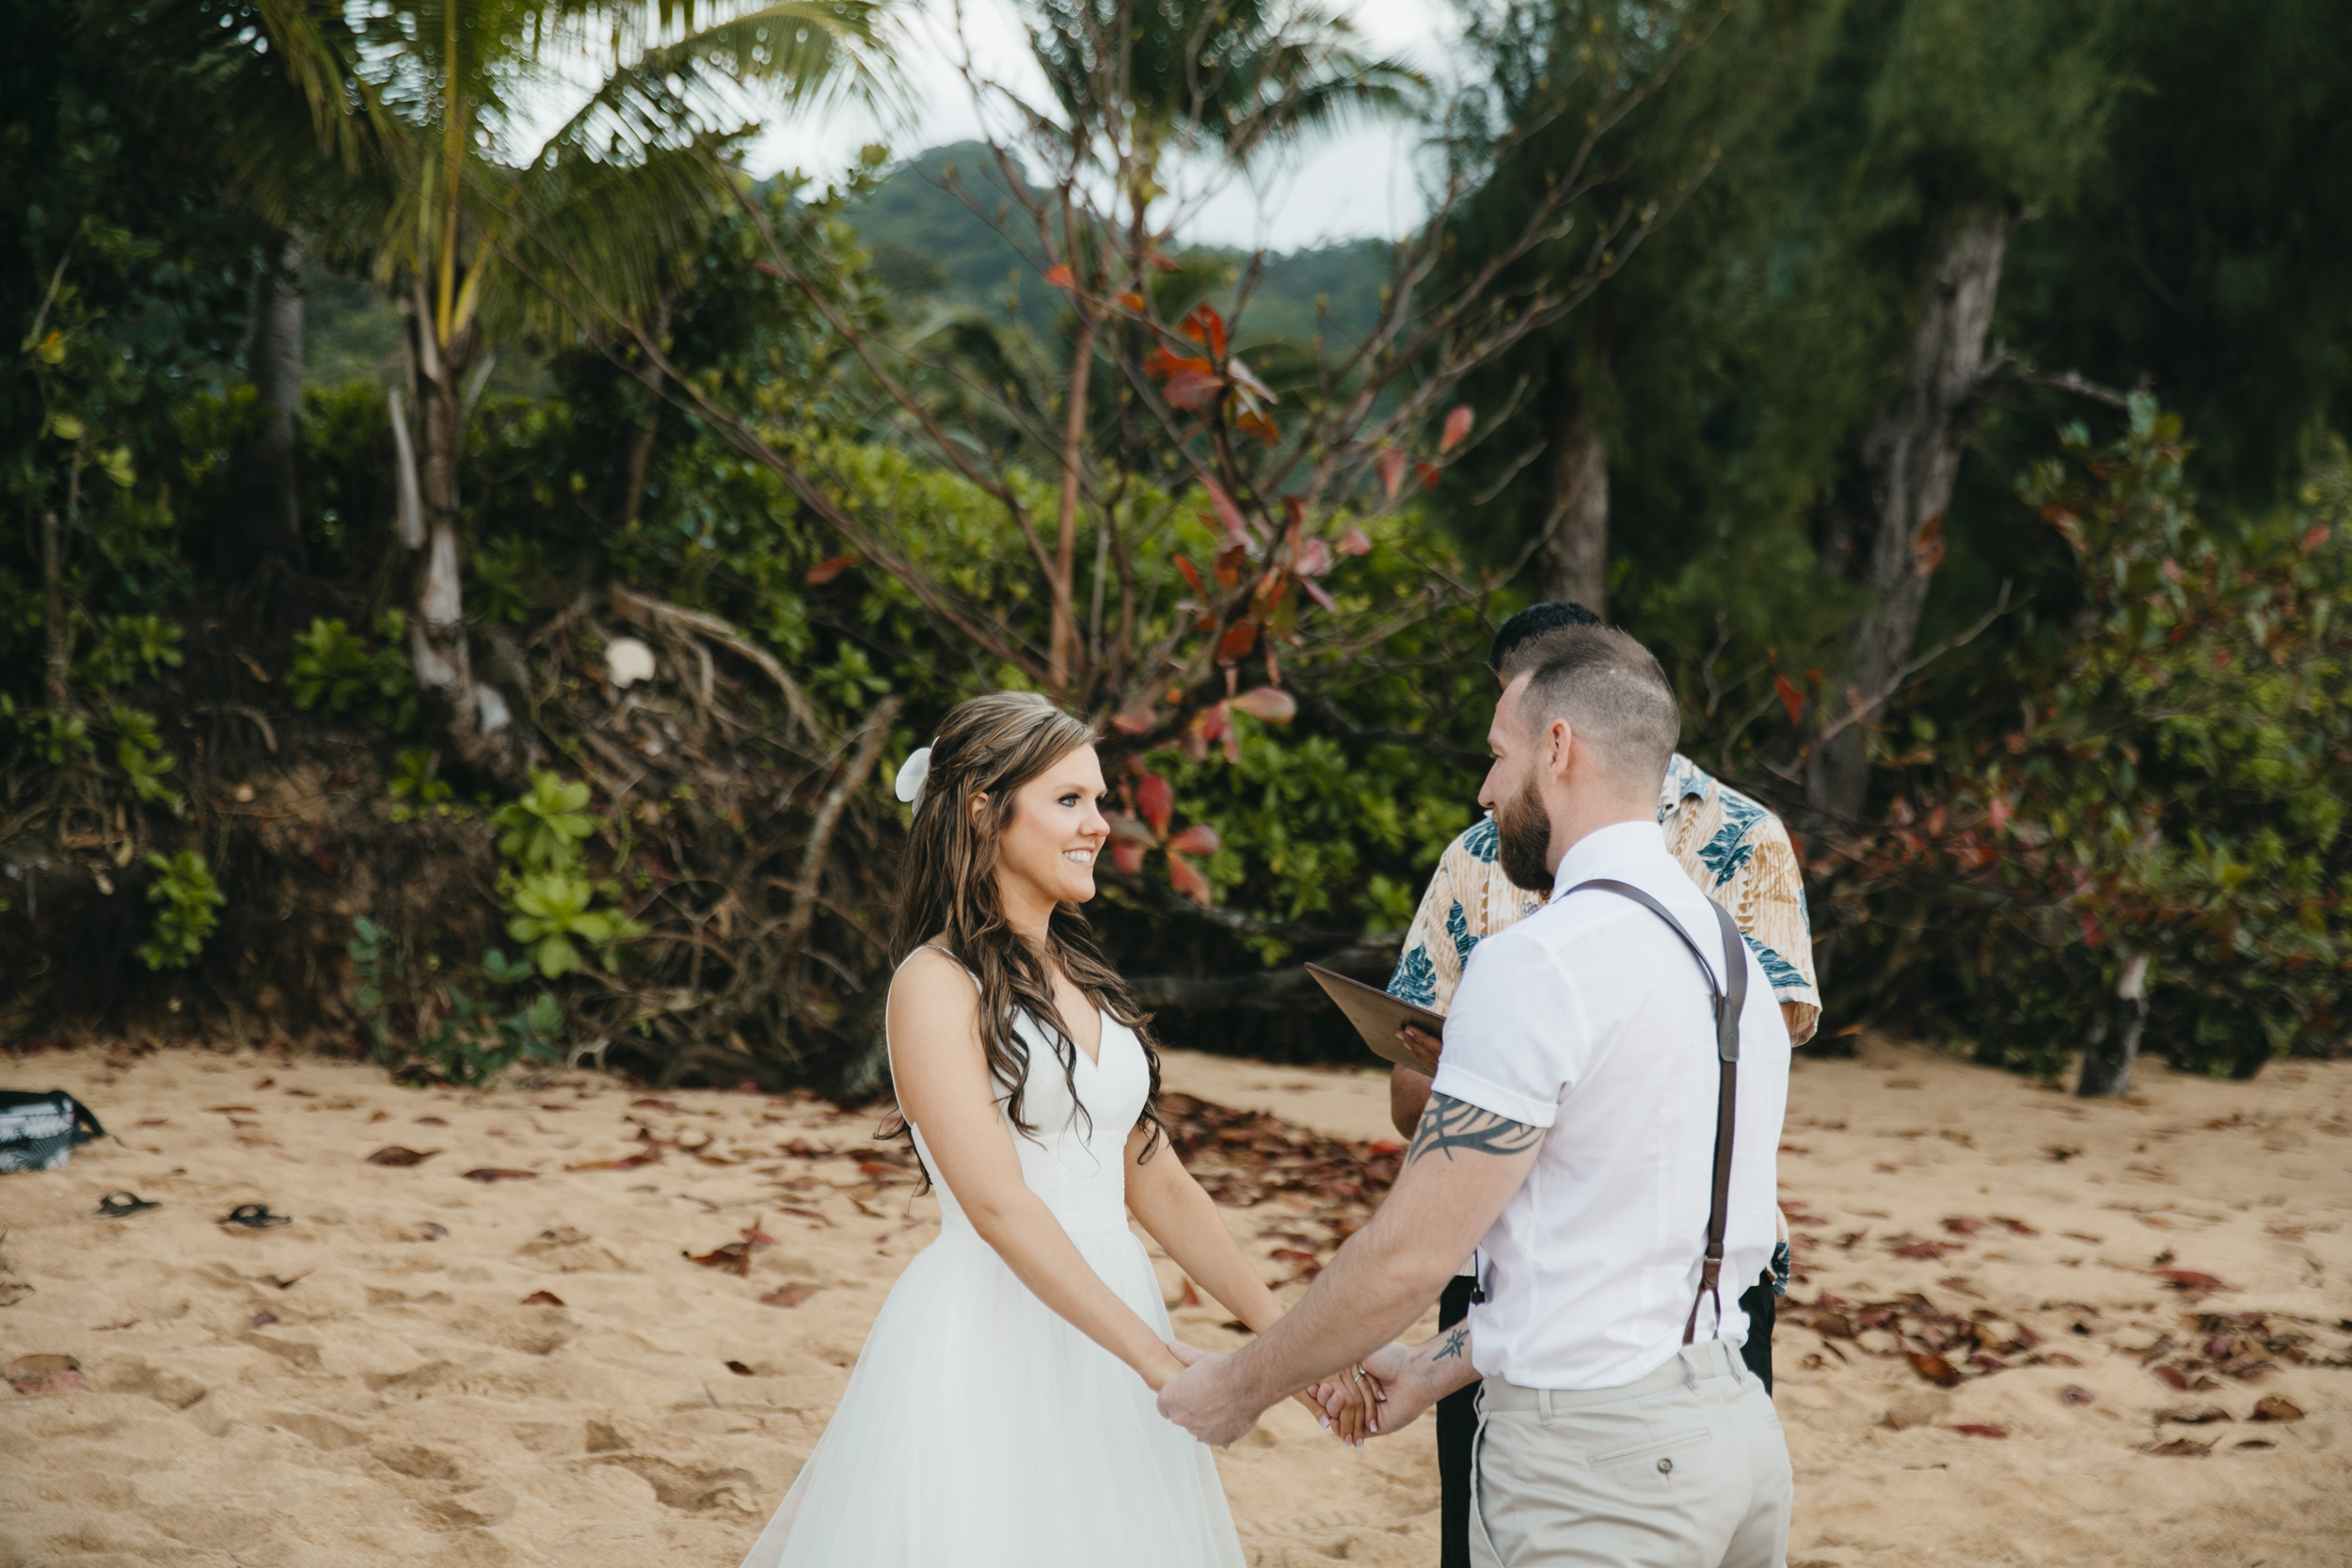 Vows are exchanged during Tunnels Beach wedding ceremony with Kauai Elopement photographers Colby and Jess